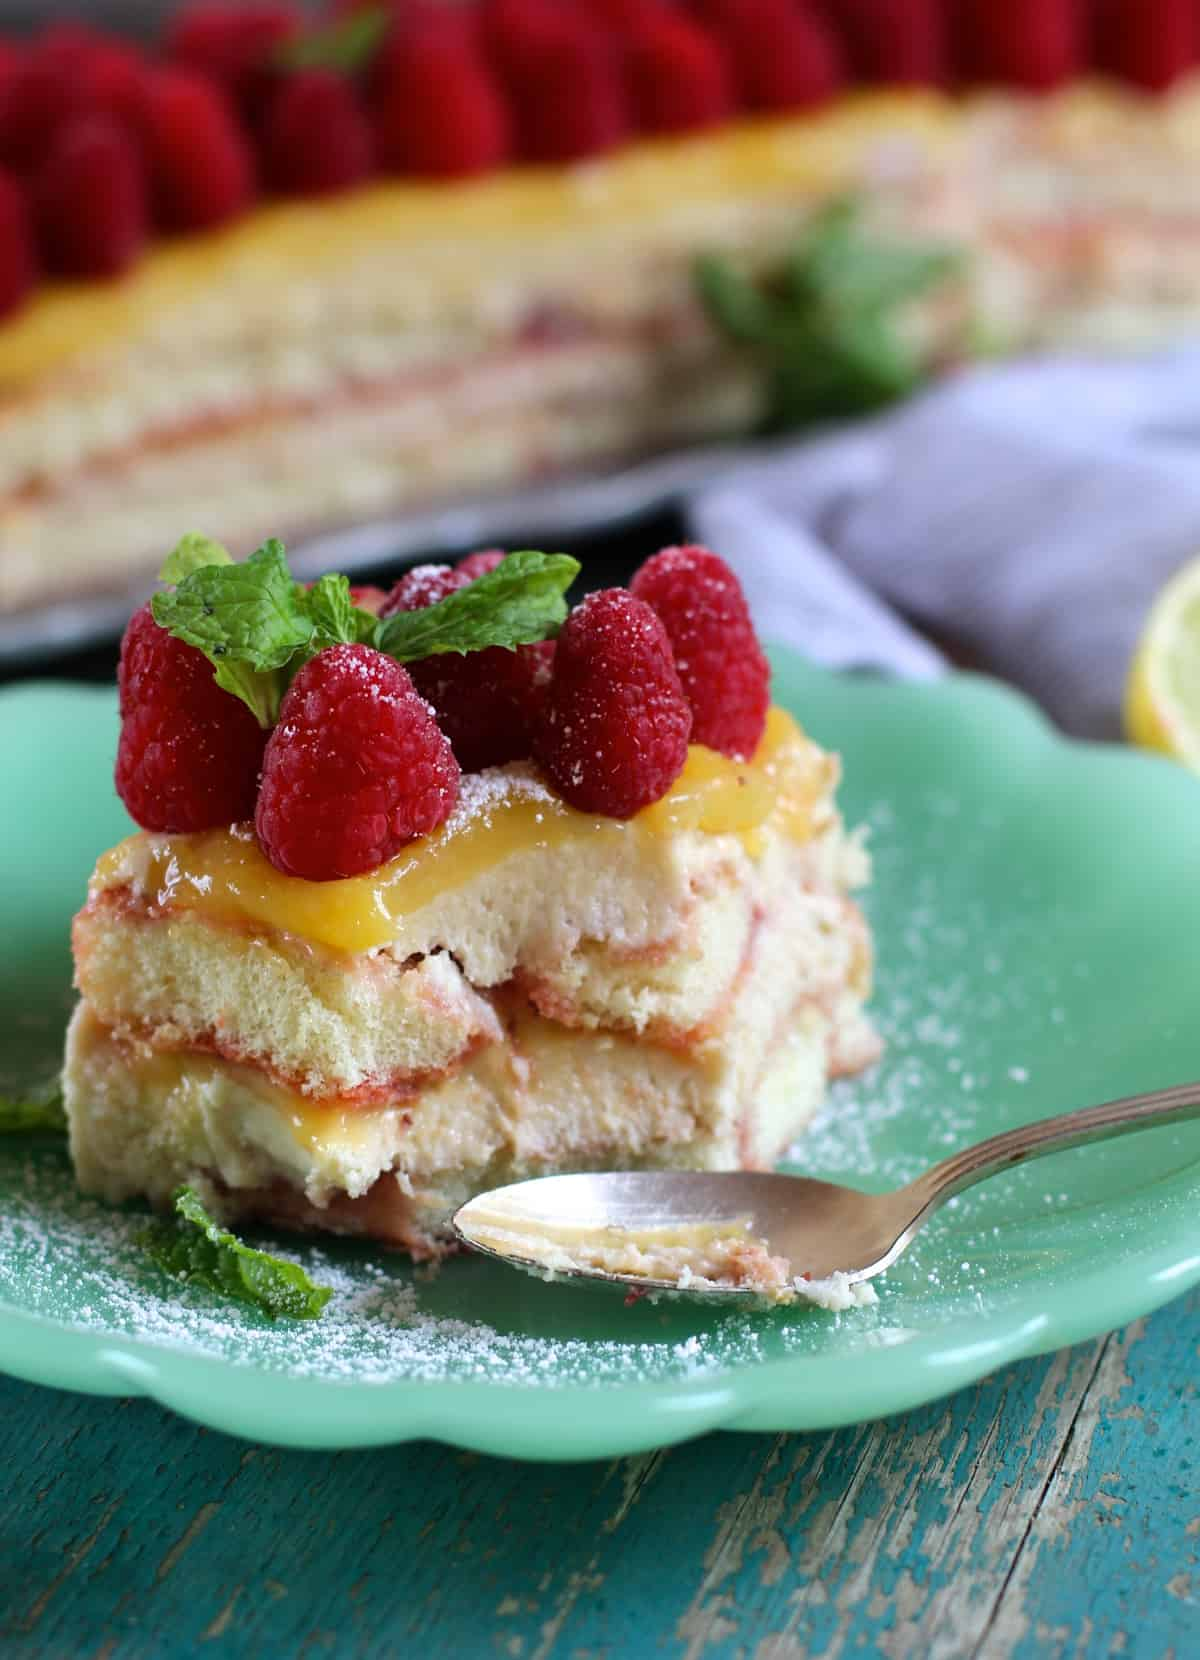 layers of creamy mascarpone, fresh raspberries, tangy meyer lemon curd, and sweet lady fingers